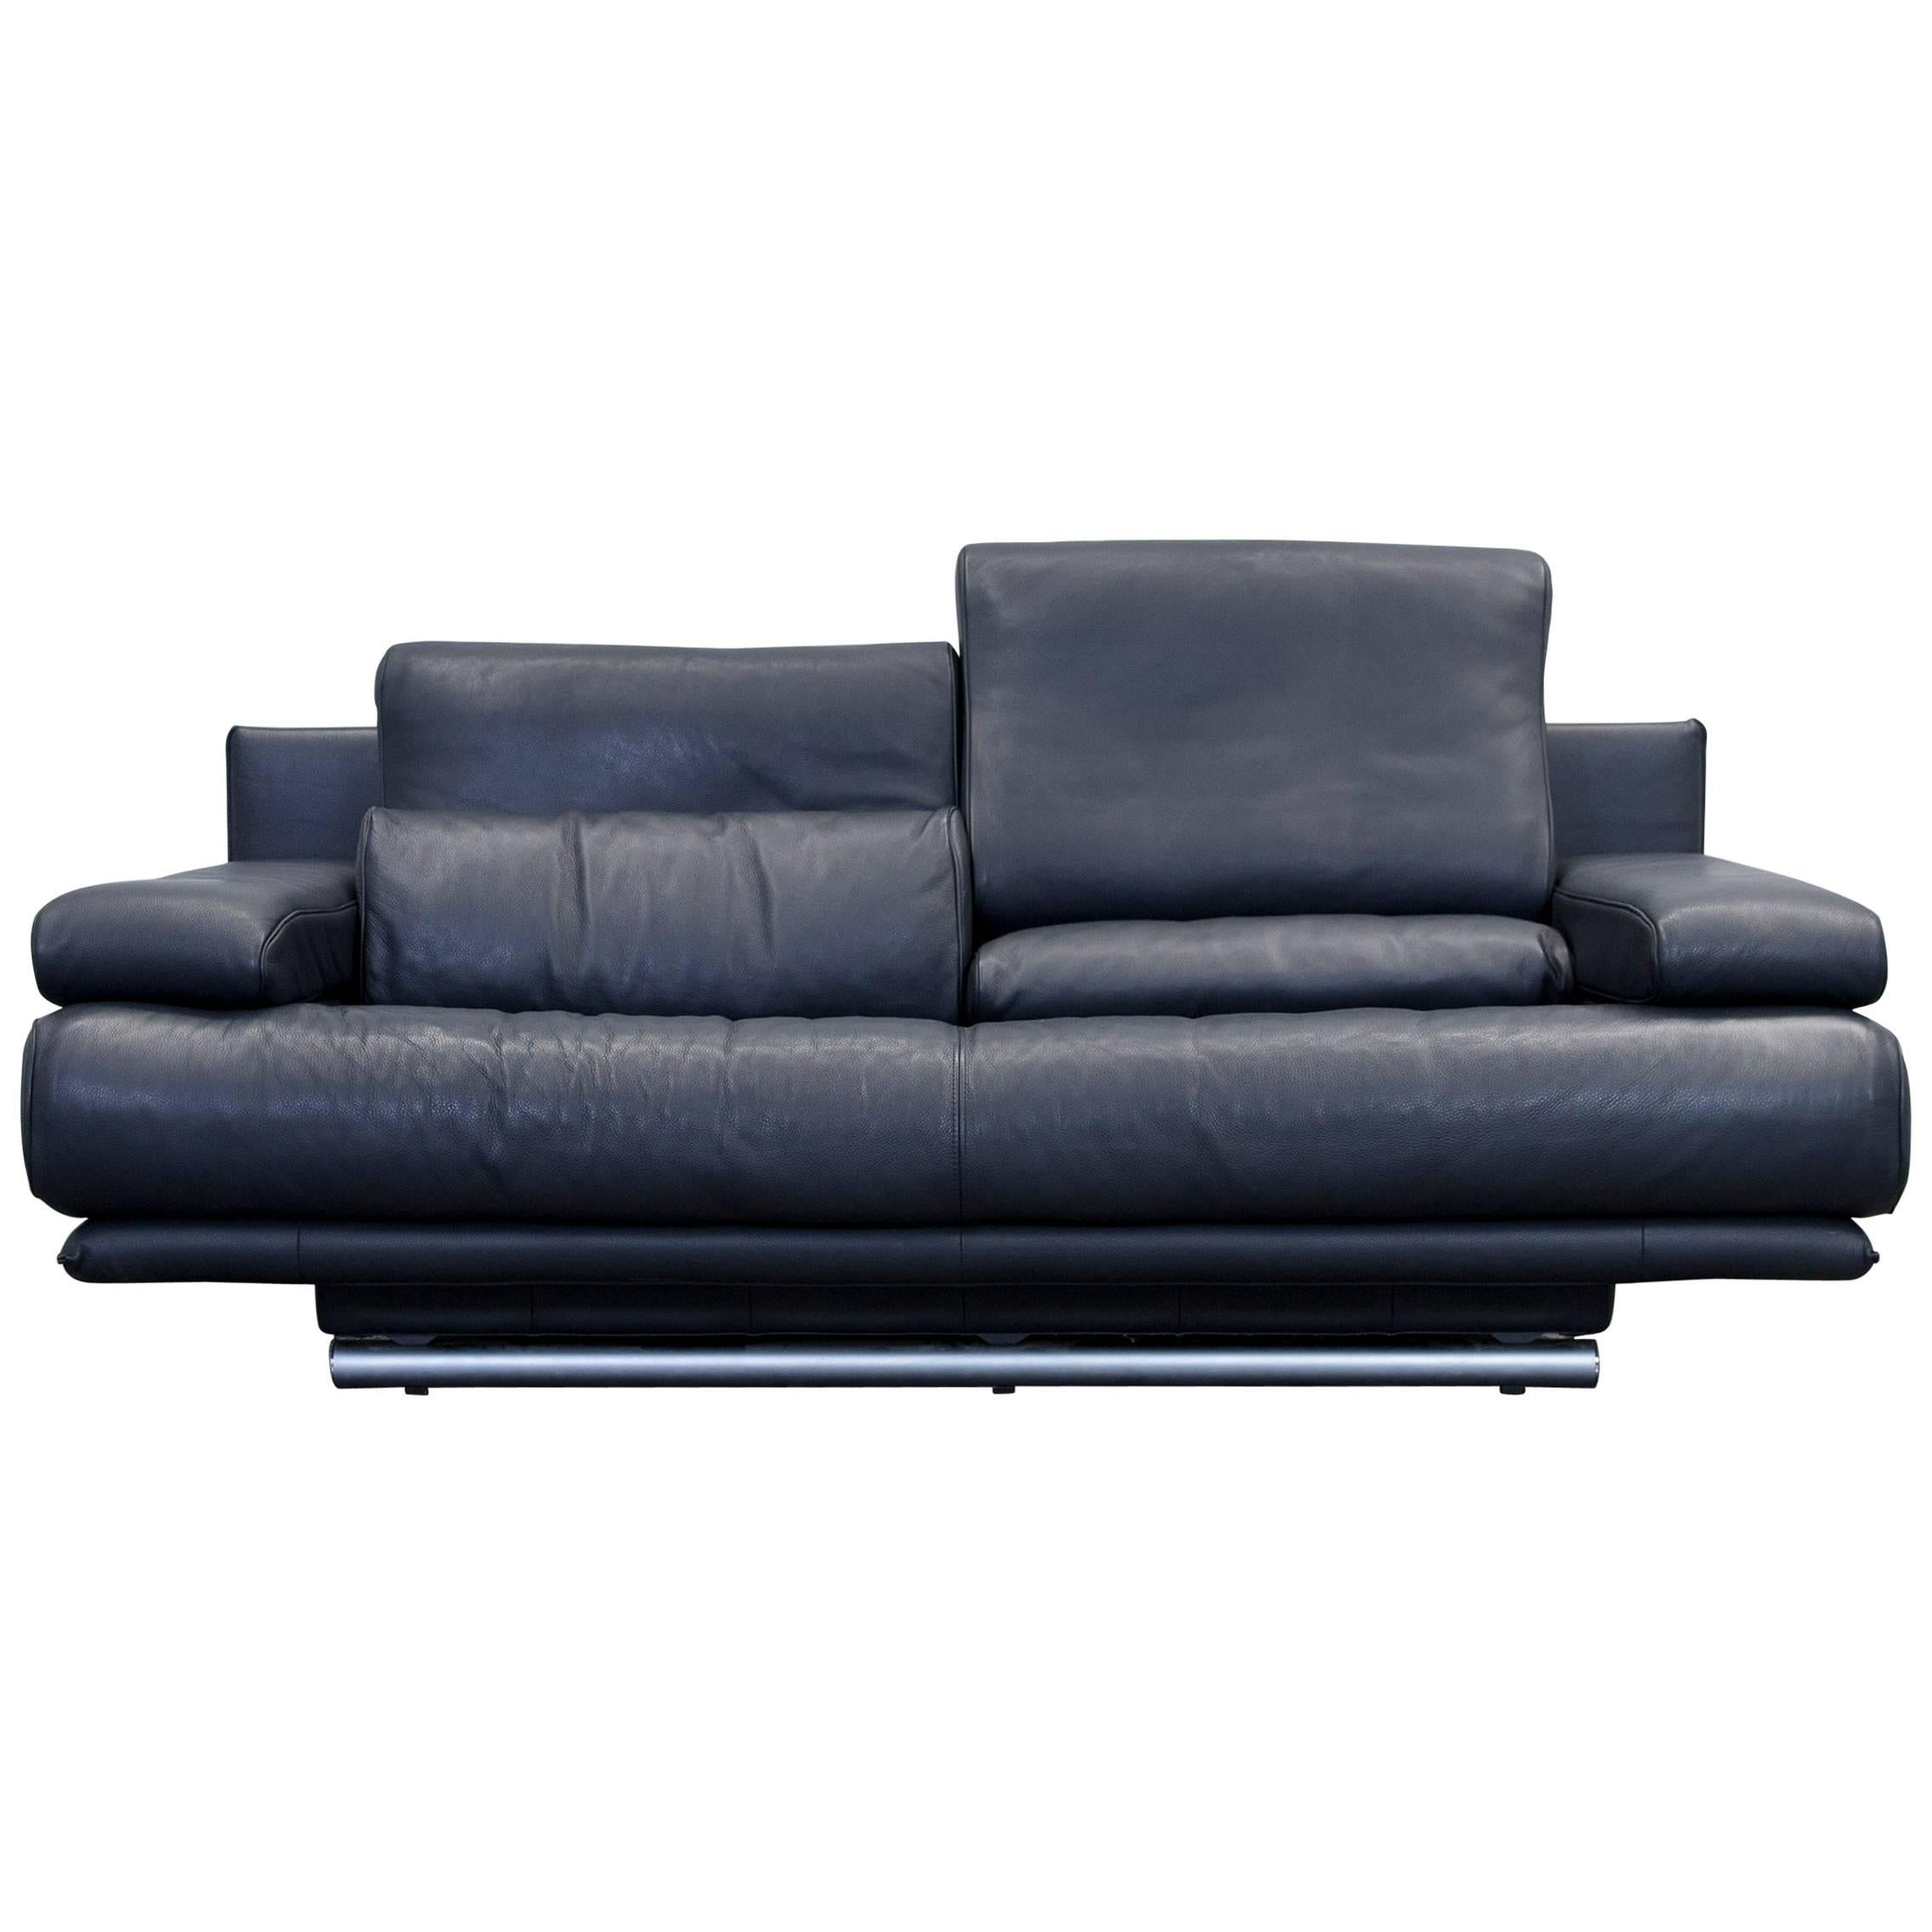 Benz Couch Rolf Benz Sofas Perfect Viyet Luxury Furniture Consignment